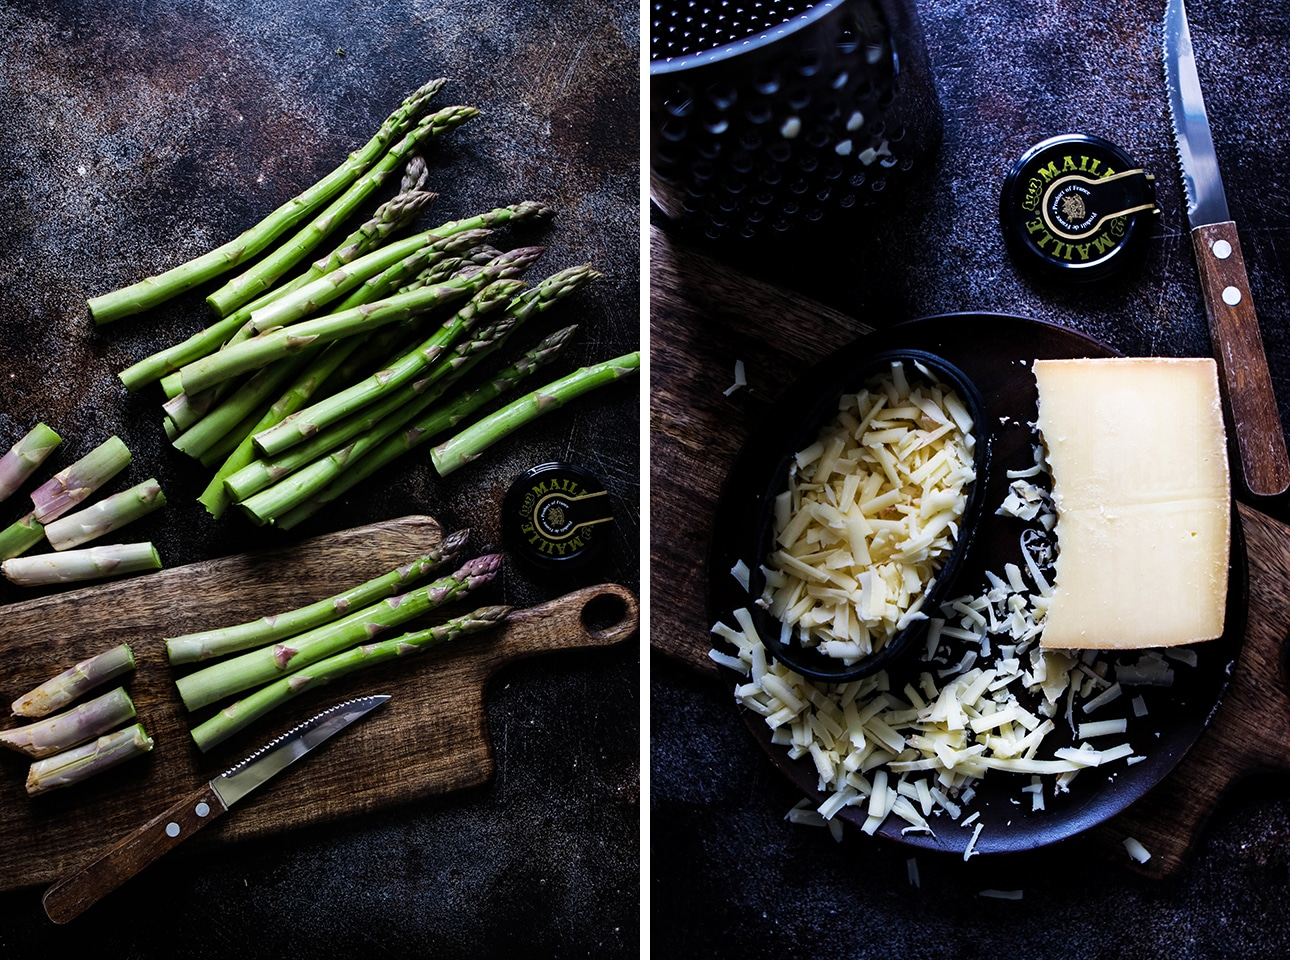 Collage: Asparagus Spears Being Trimmed on a Board Next to Grated Gruyere Cheese